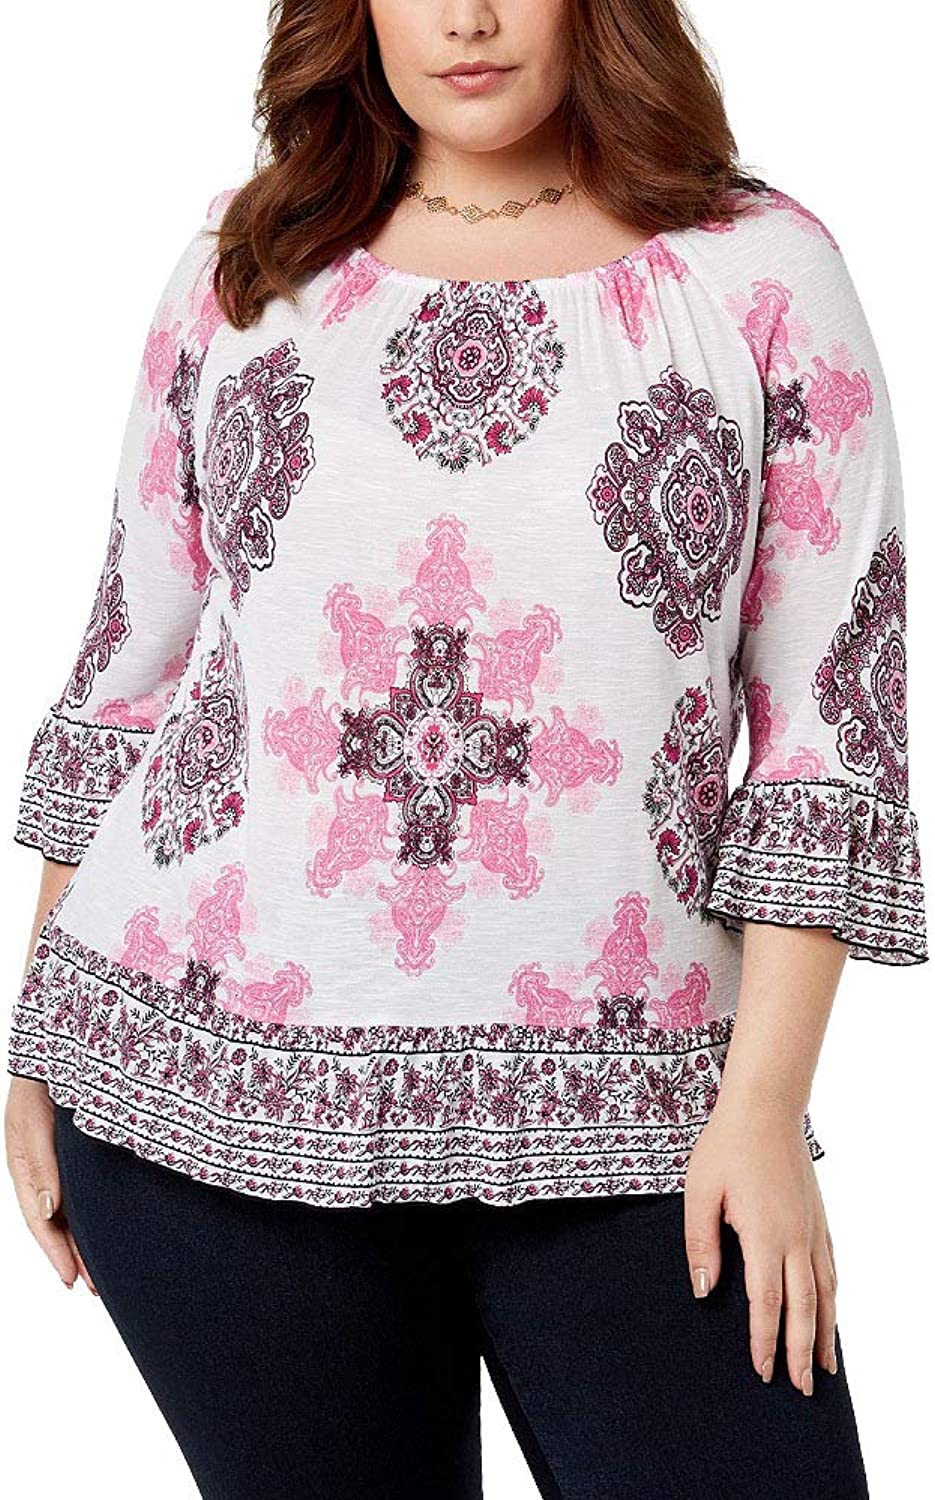 I.N.C. International Concepts Women's Plus Size Ruffled Peasant Top